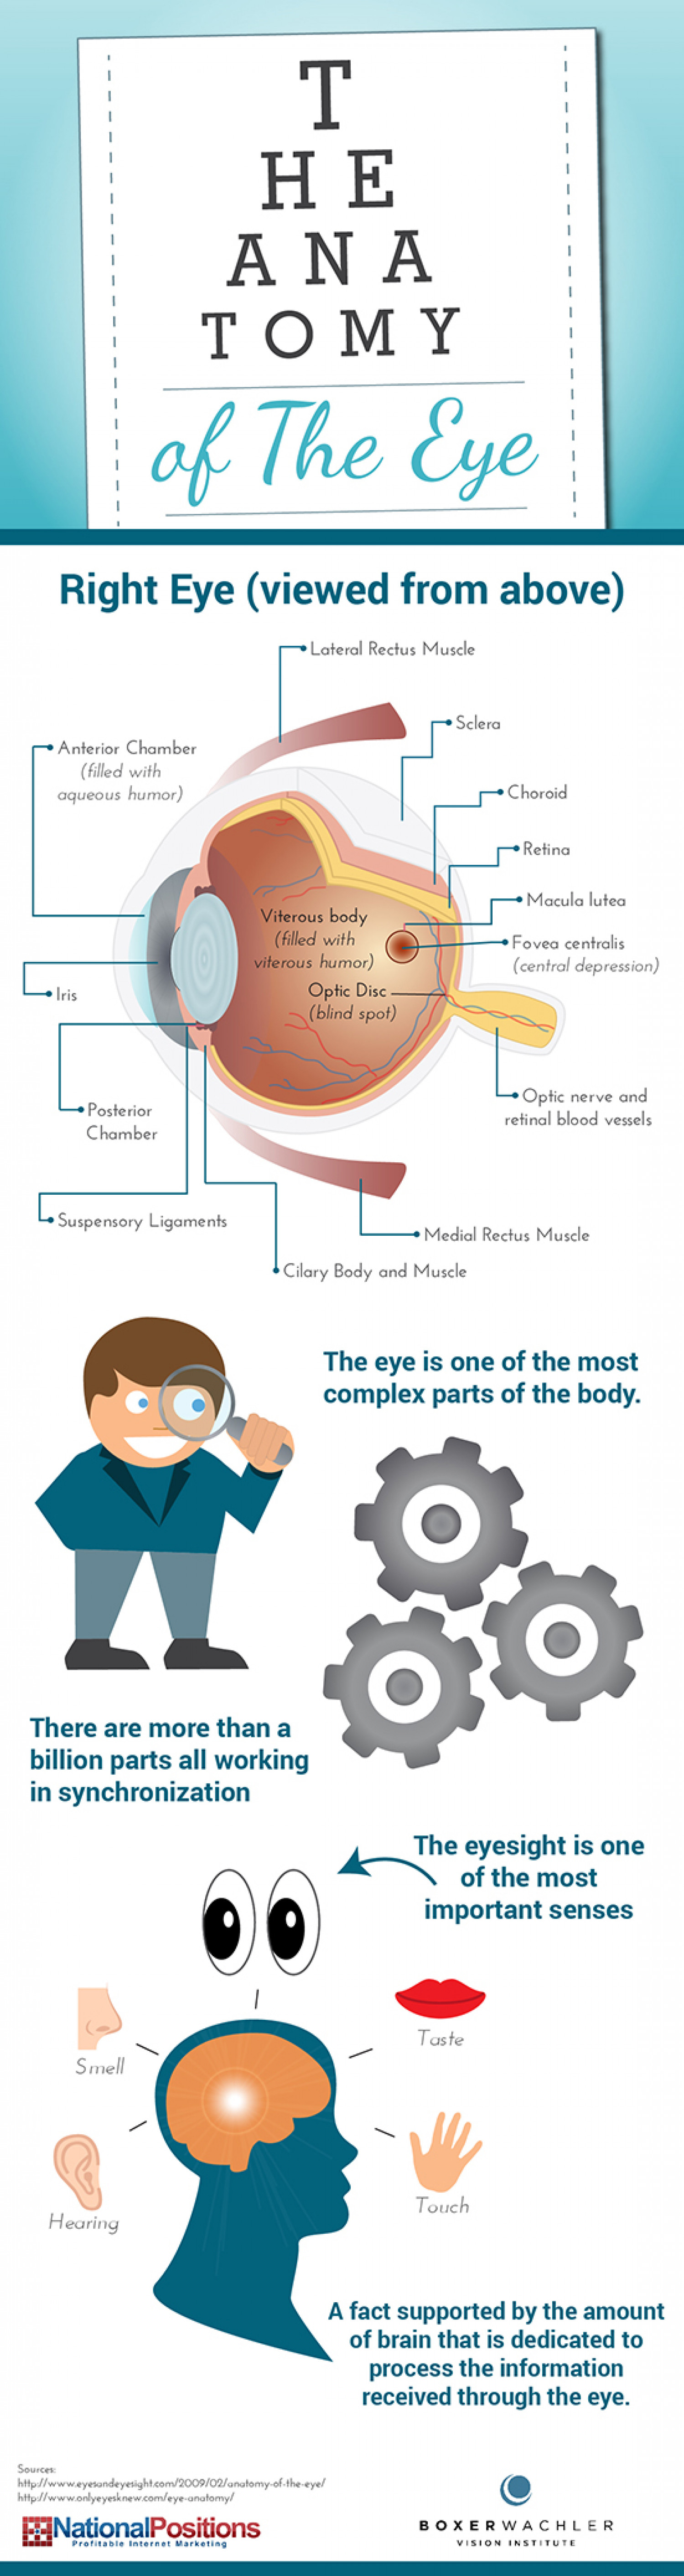 The Anatomy of the Eye Infographic